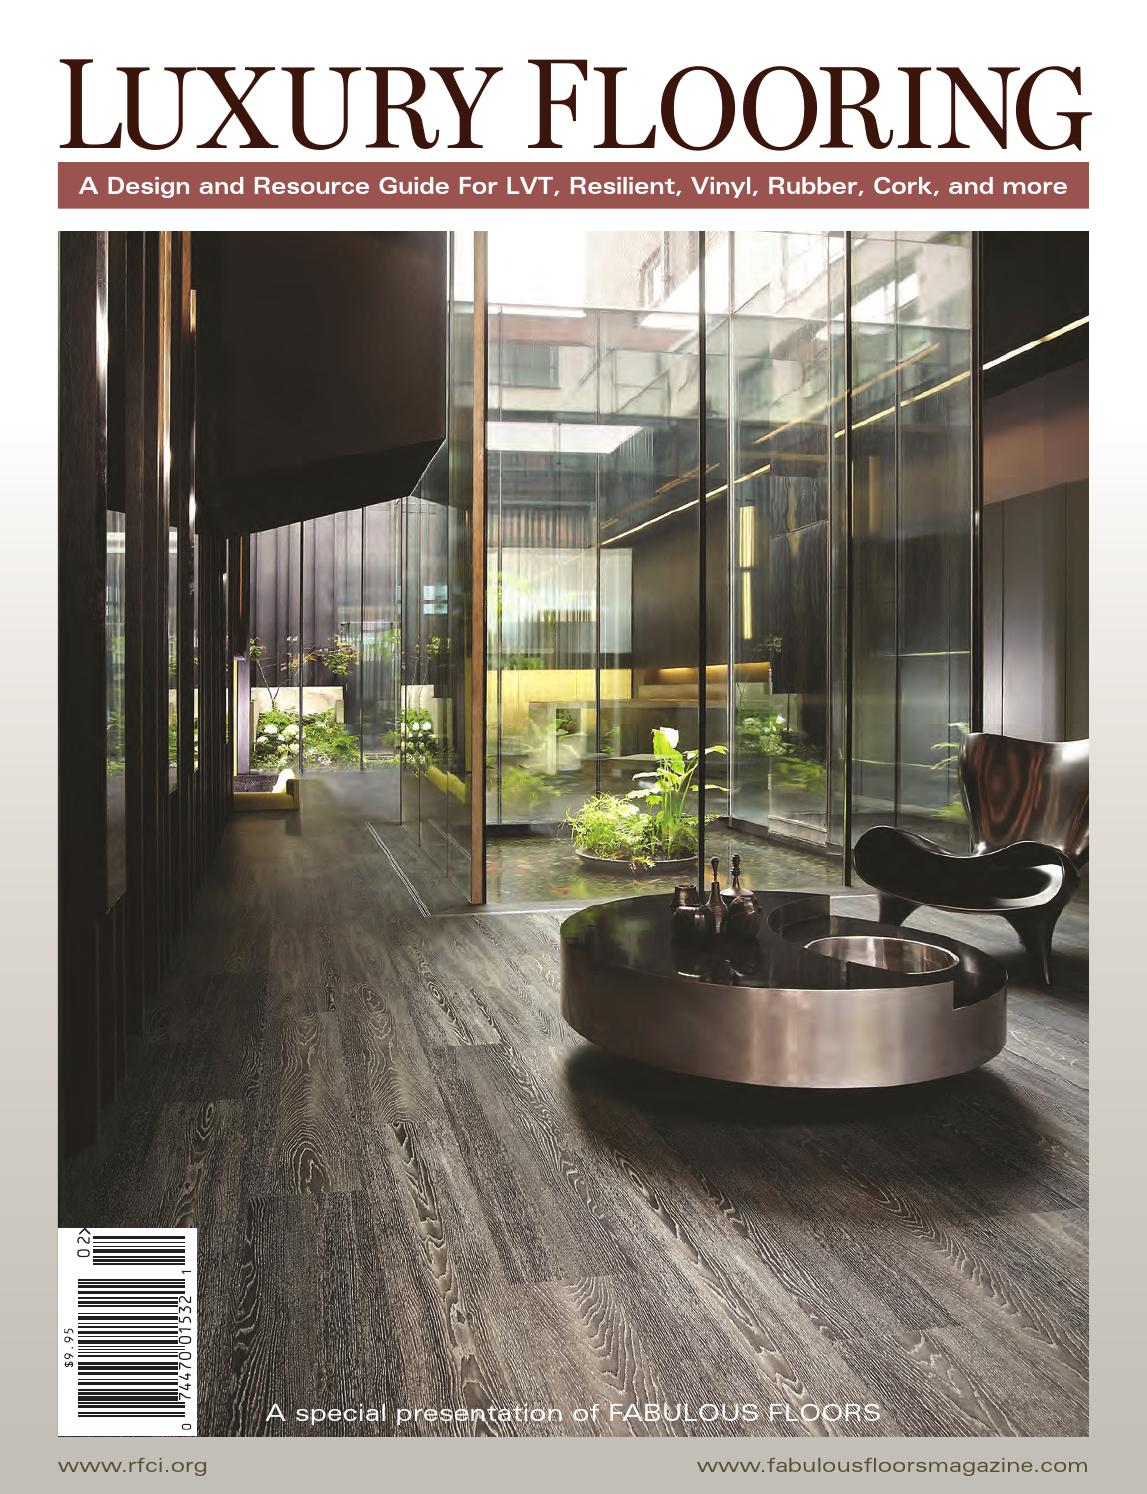 Luxury Flooring By Margo Locust Issuu